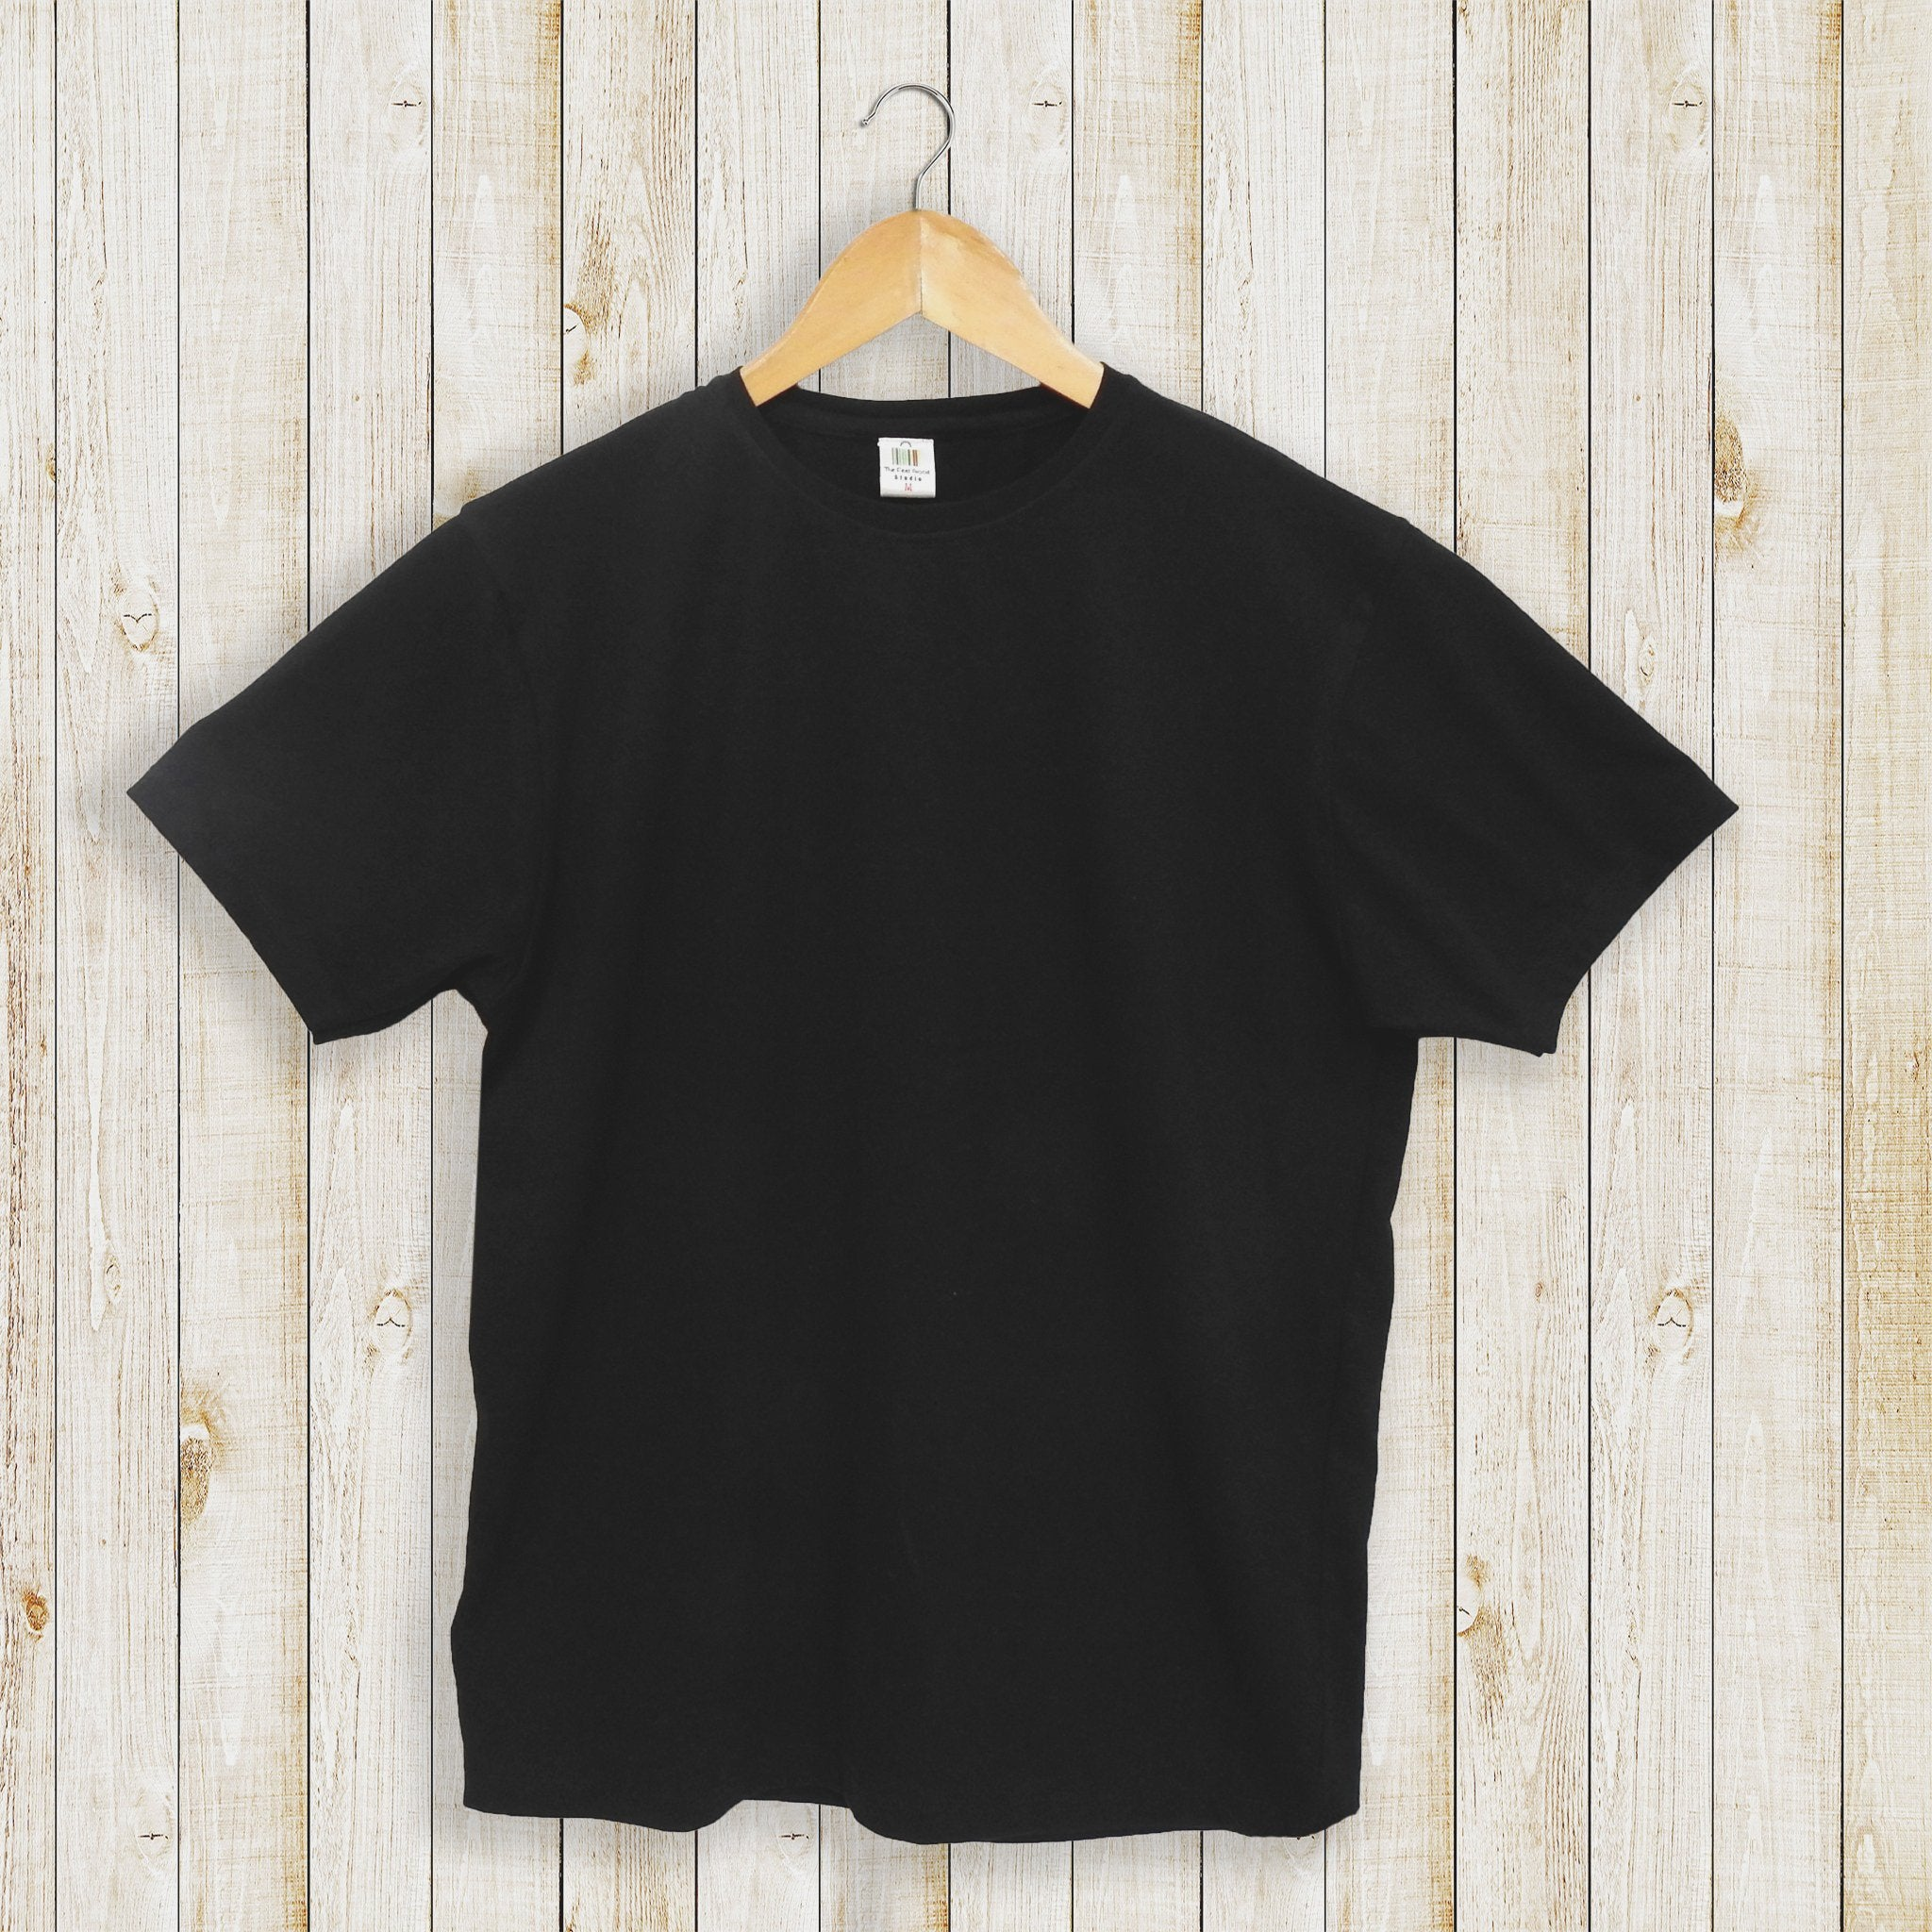 Wardrobe Staple Black Women's Tee